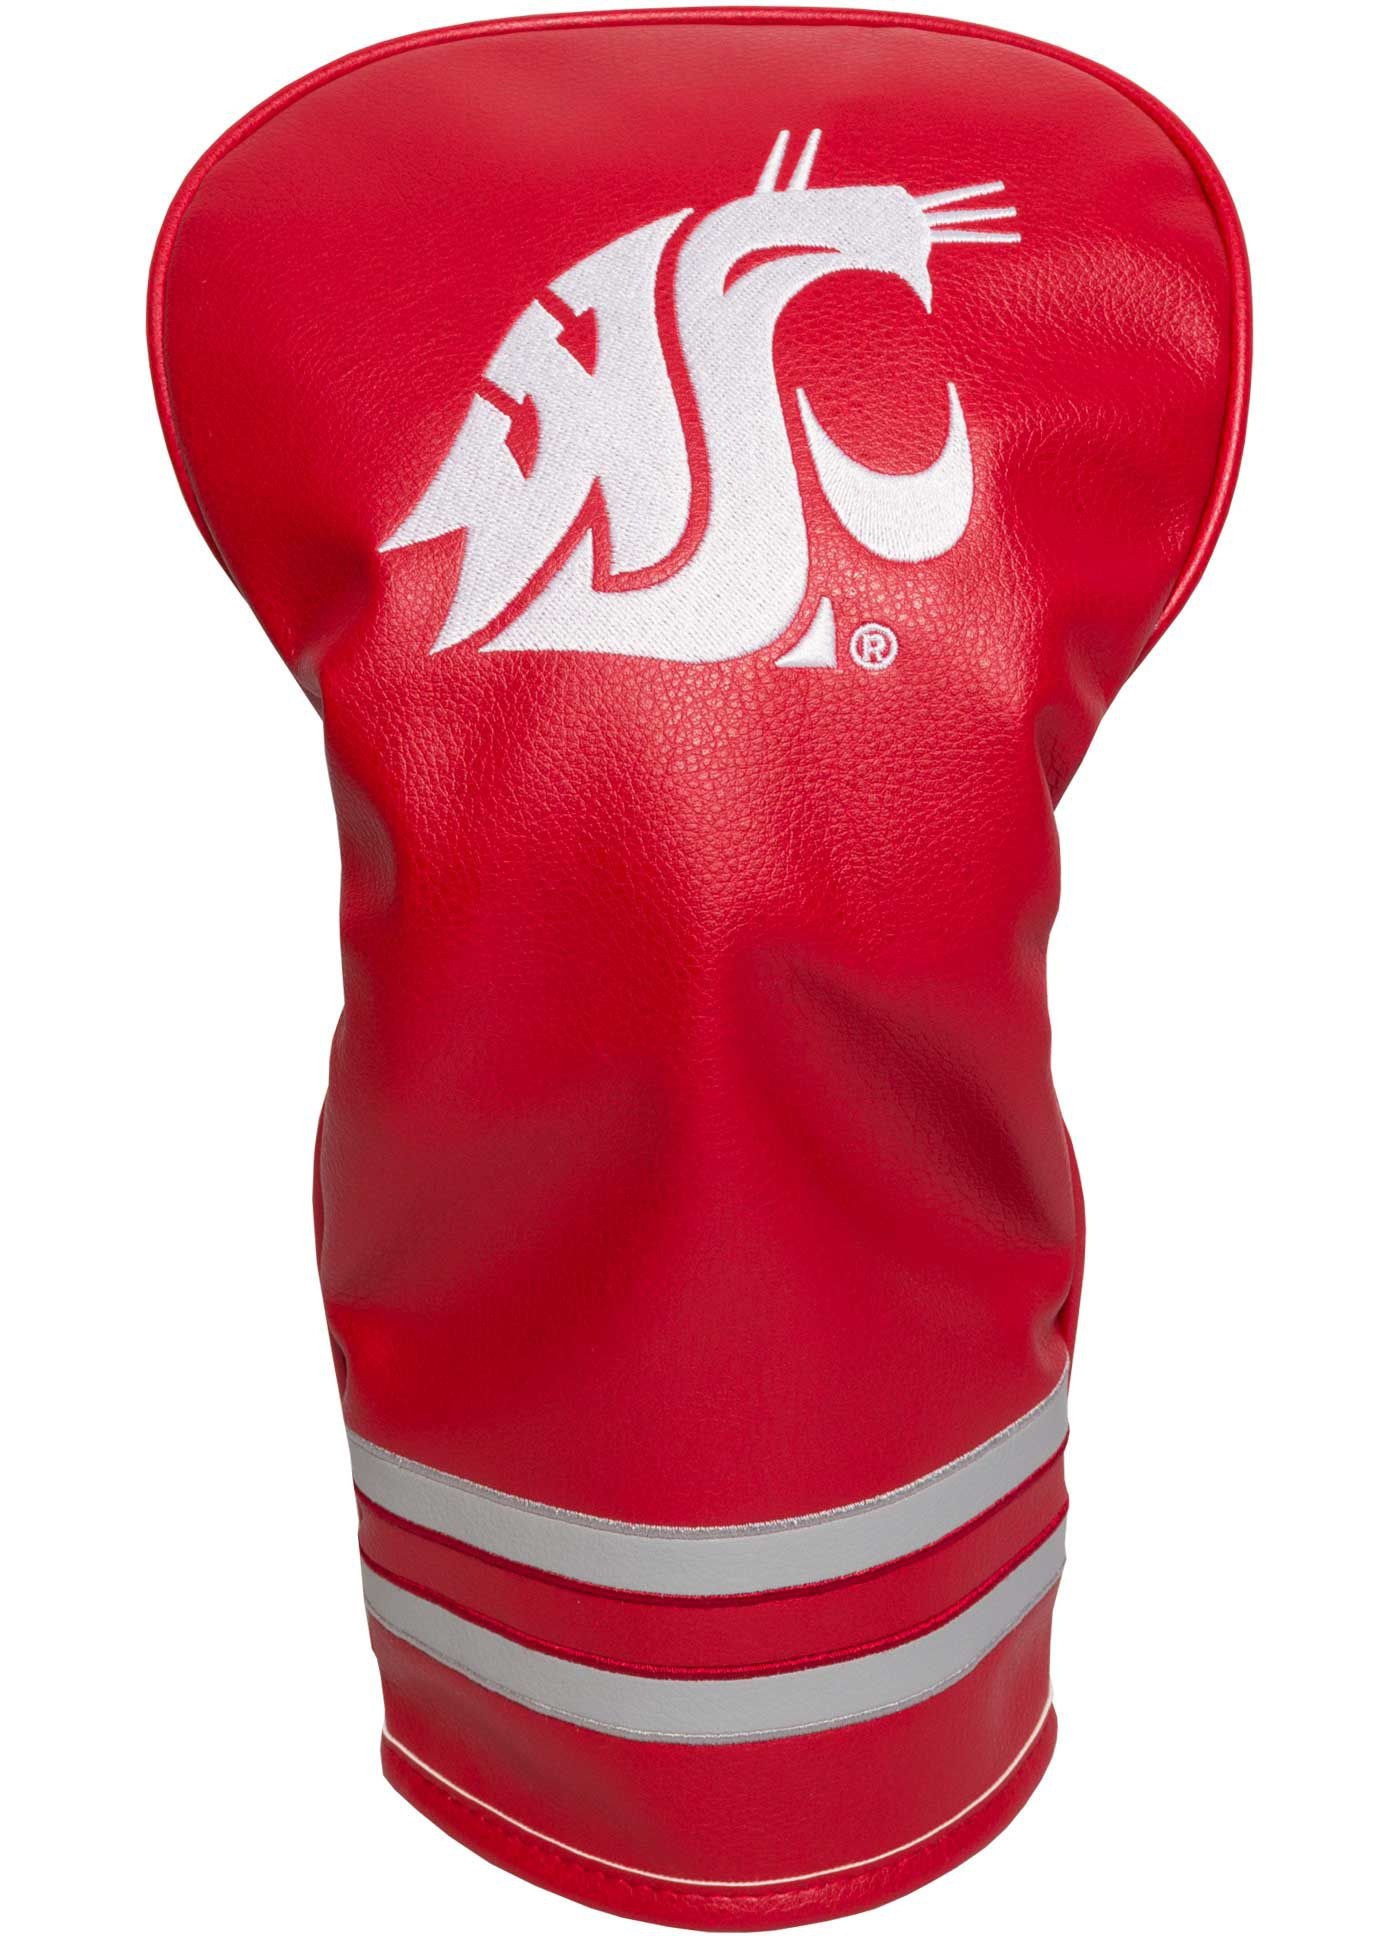 Team Golf Washington State Cougars Vintage Driver Headcover